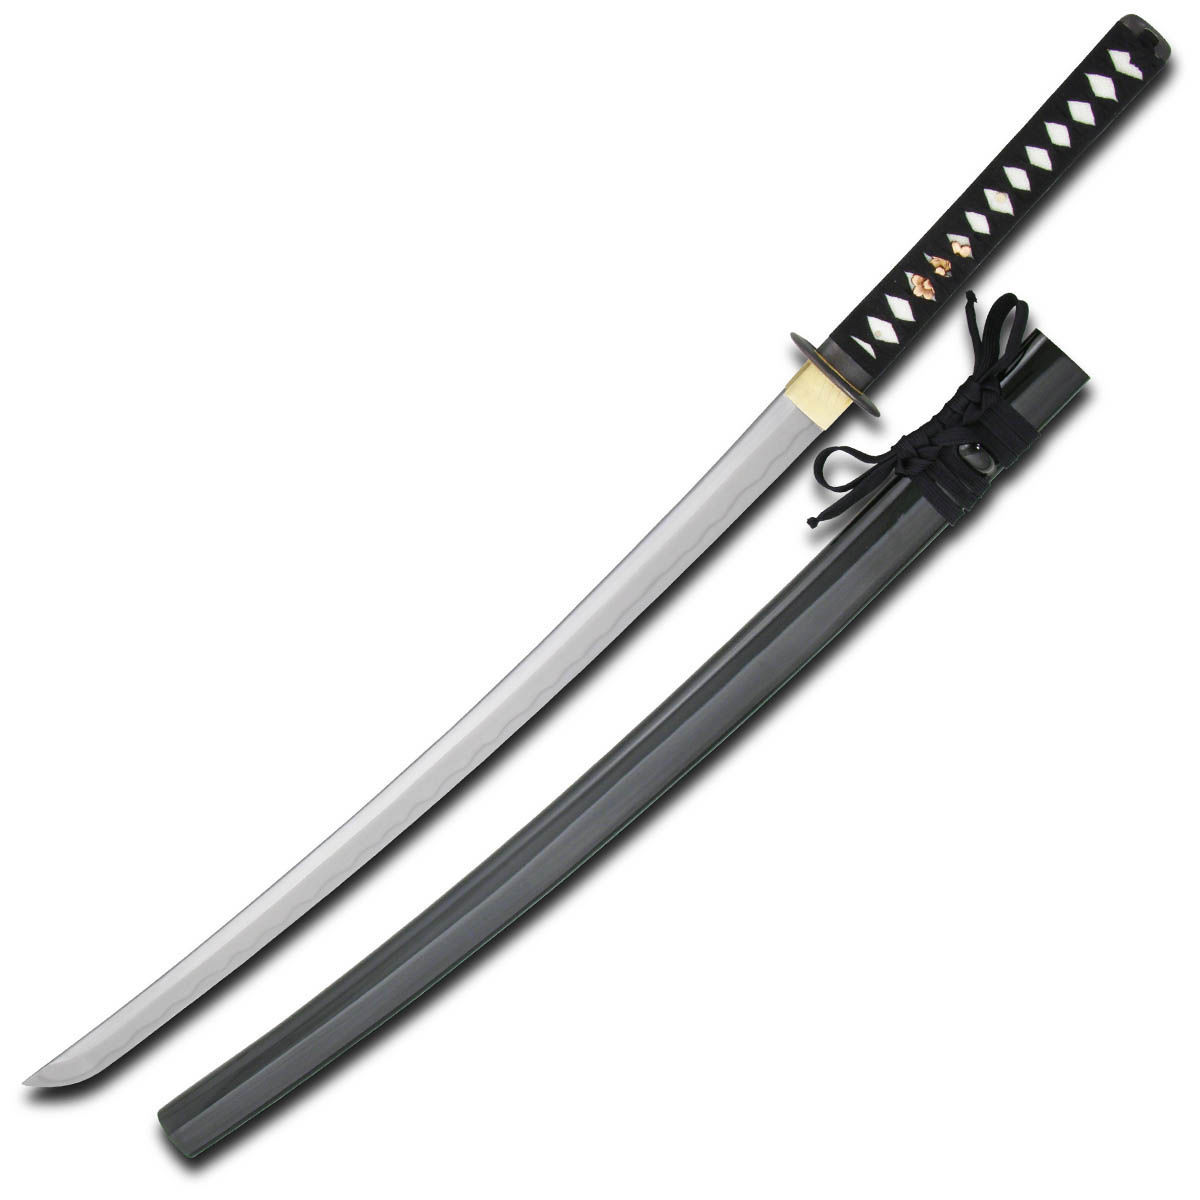 Practical XL Katana  features a wider blade than regular katanas for easier cutting of tatami mats